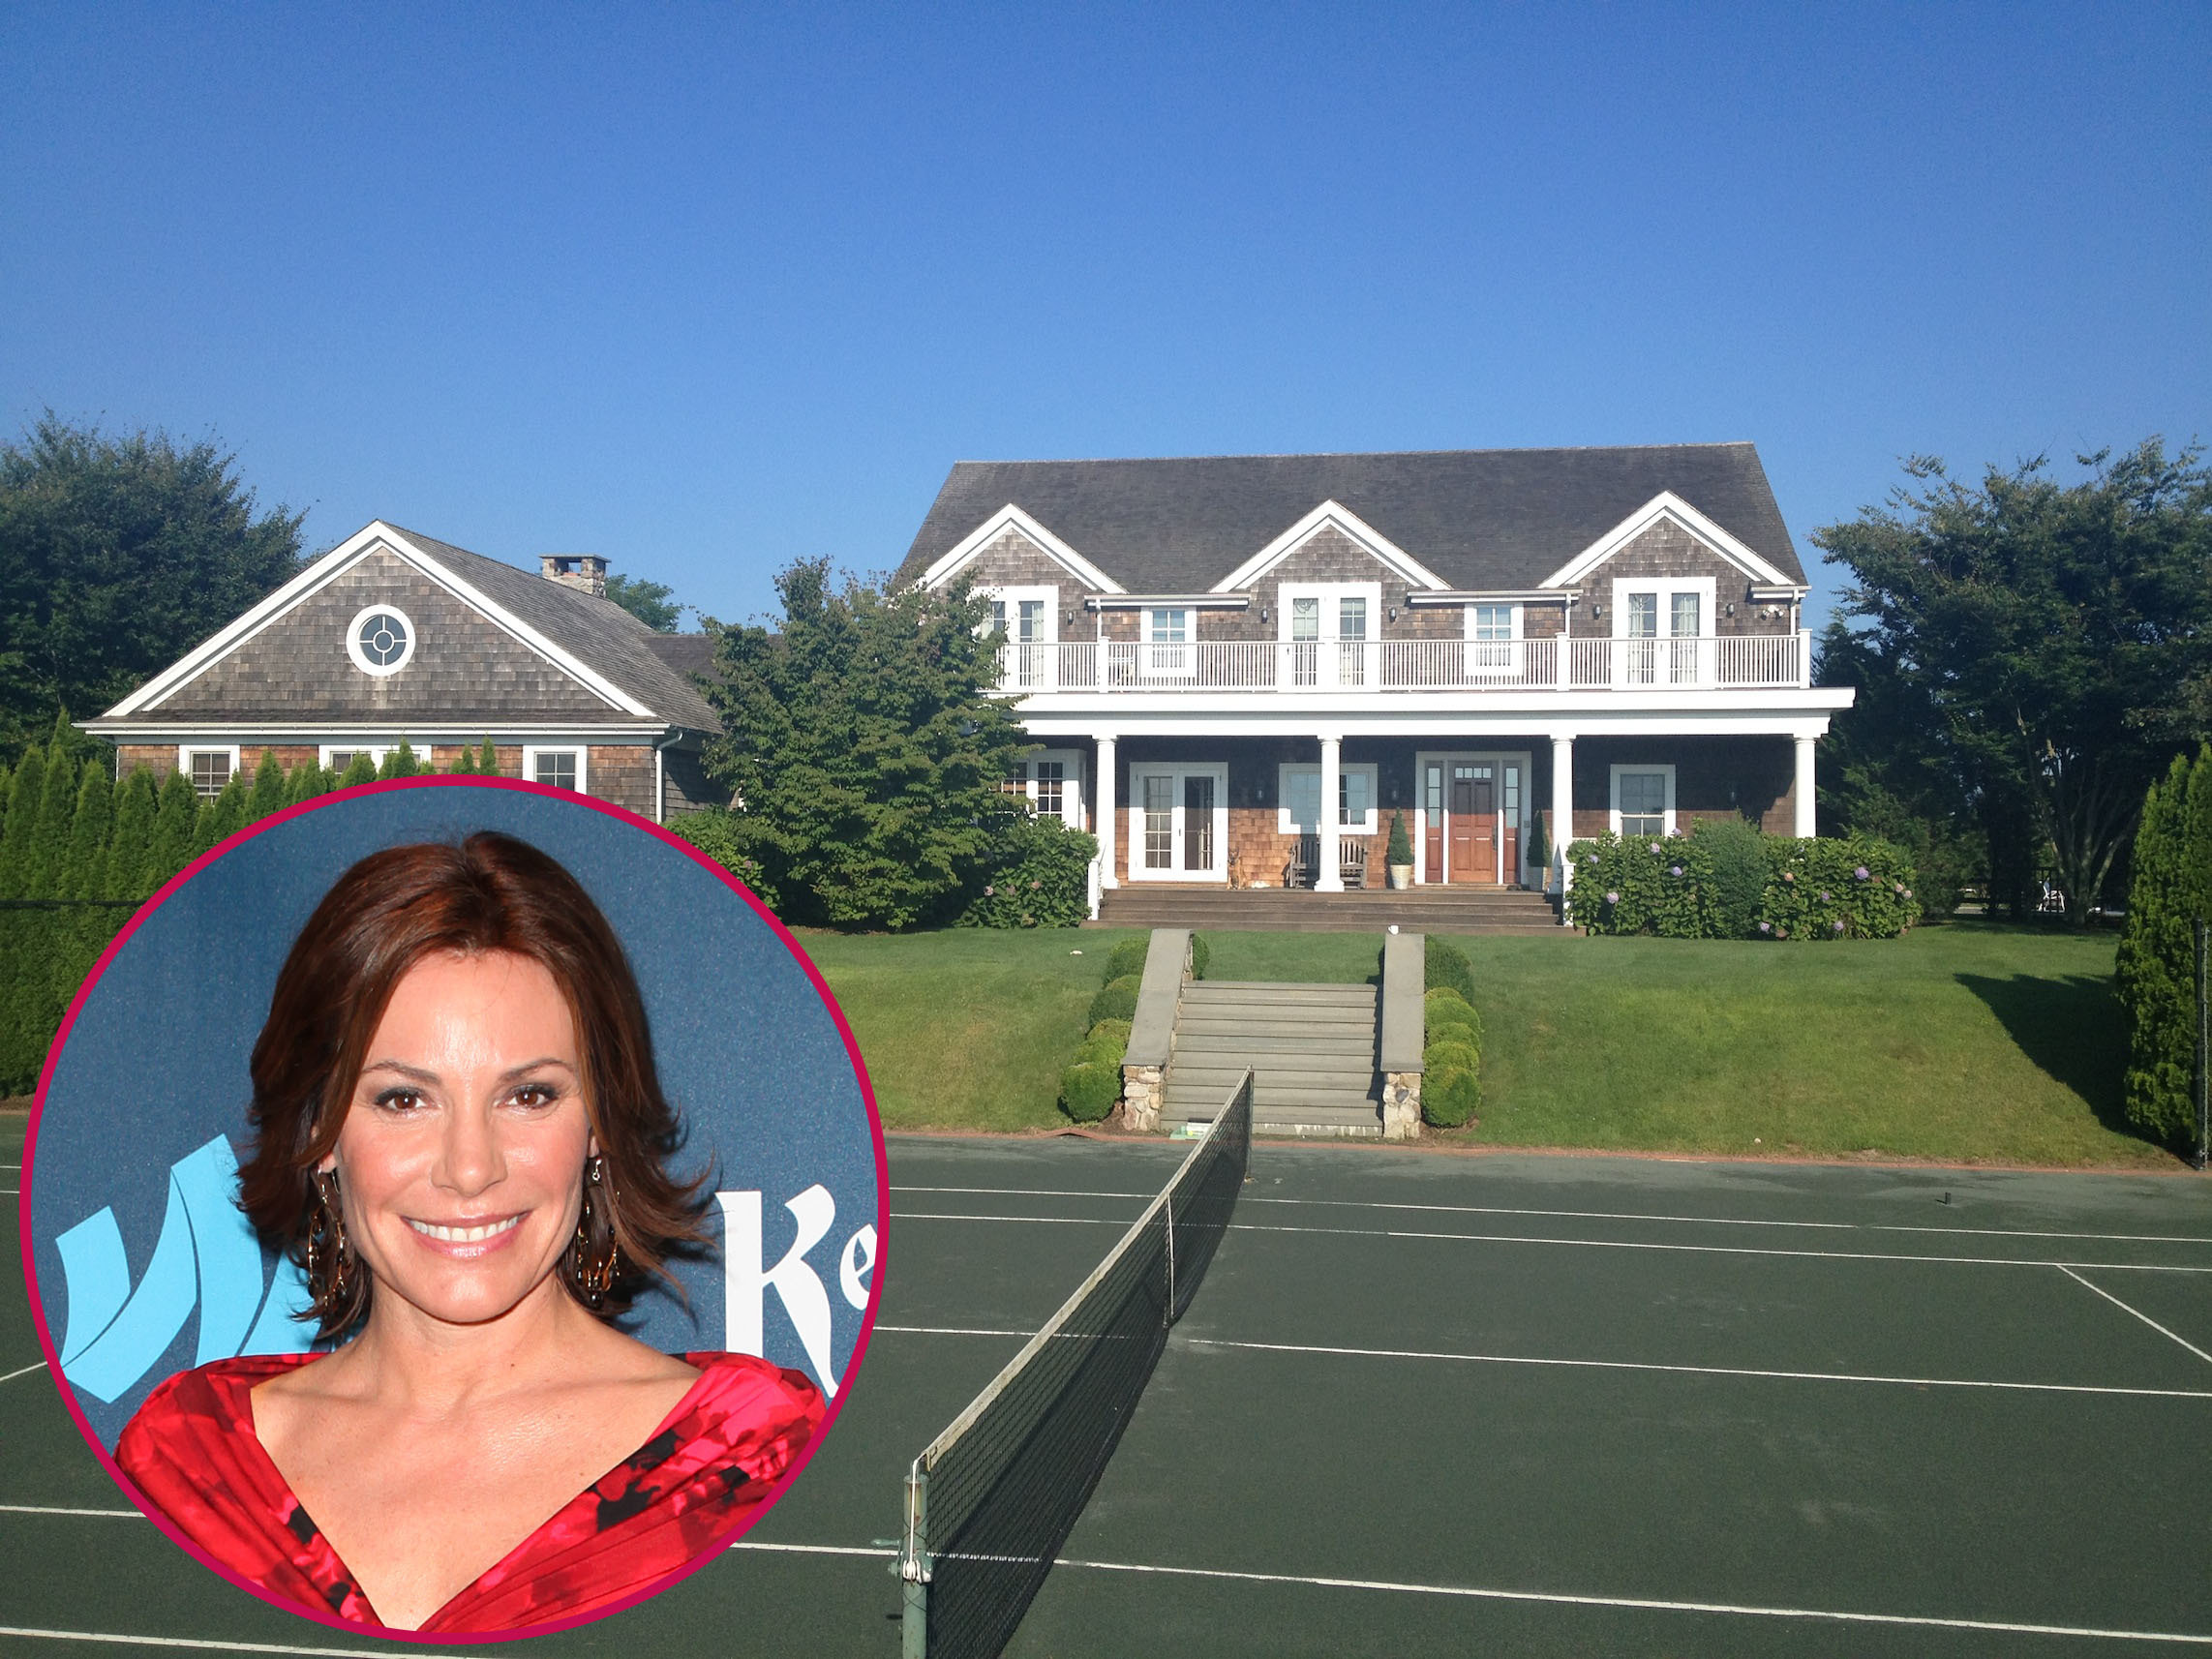 LuAnn De Lesseps Real Housewives of New York City Hamptons home